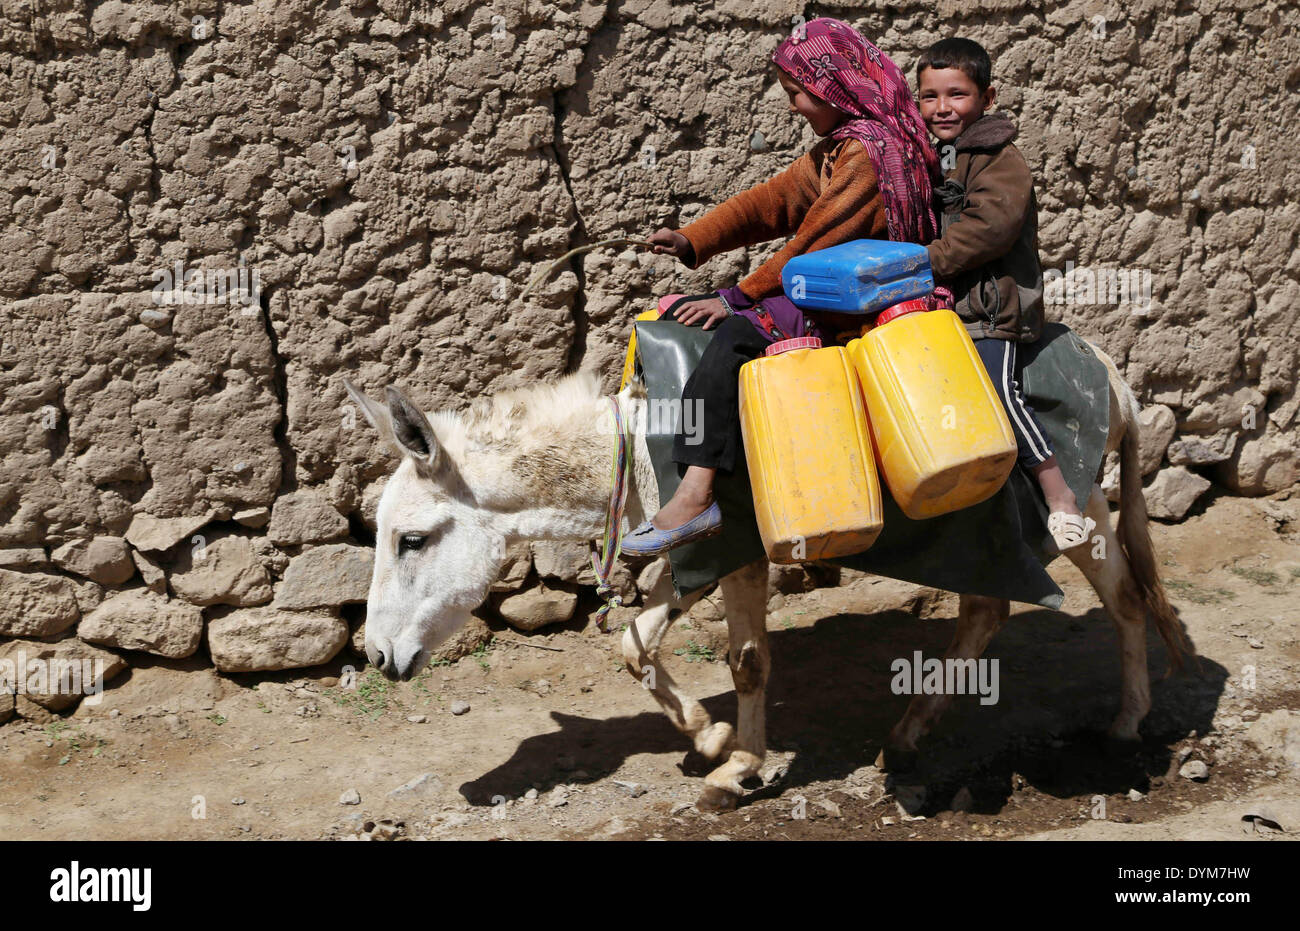 Bamyan. 22nd Apr, 2014. Afghan children ride a donkey while carrying empty barrels to get water in Bamyan province Stock Photo